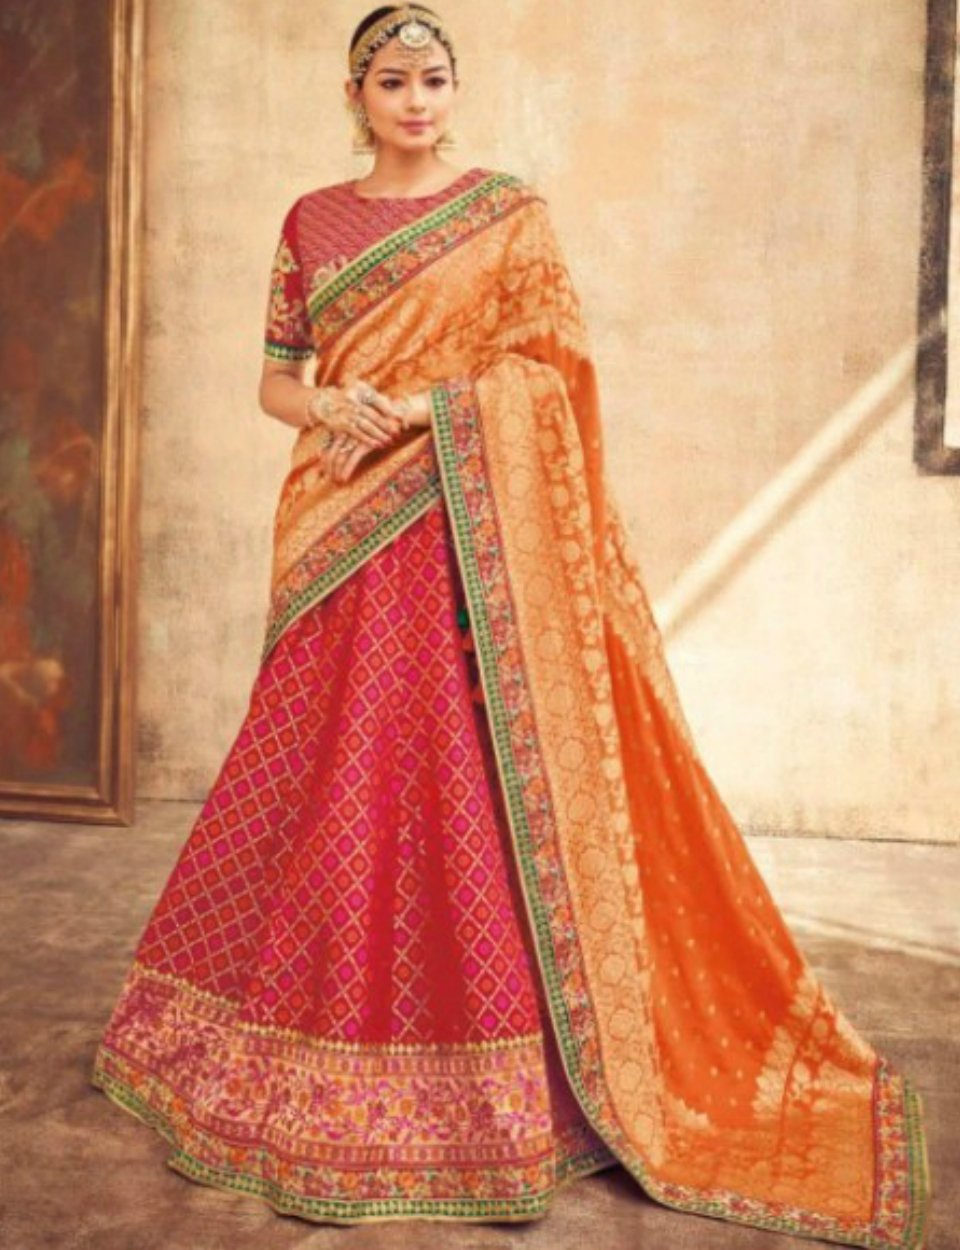 Spellbinding KIM5006 Radiant Red Maroon Pink Jacquard Silk Lehenga Choli by Fashion Nation